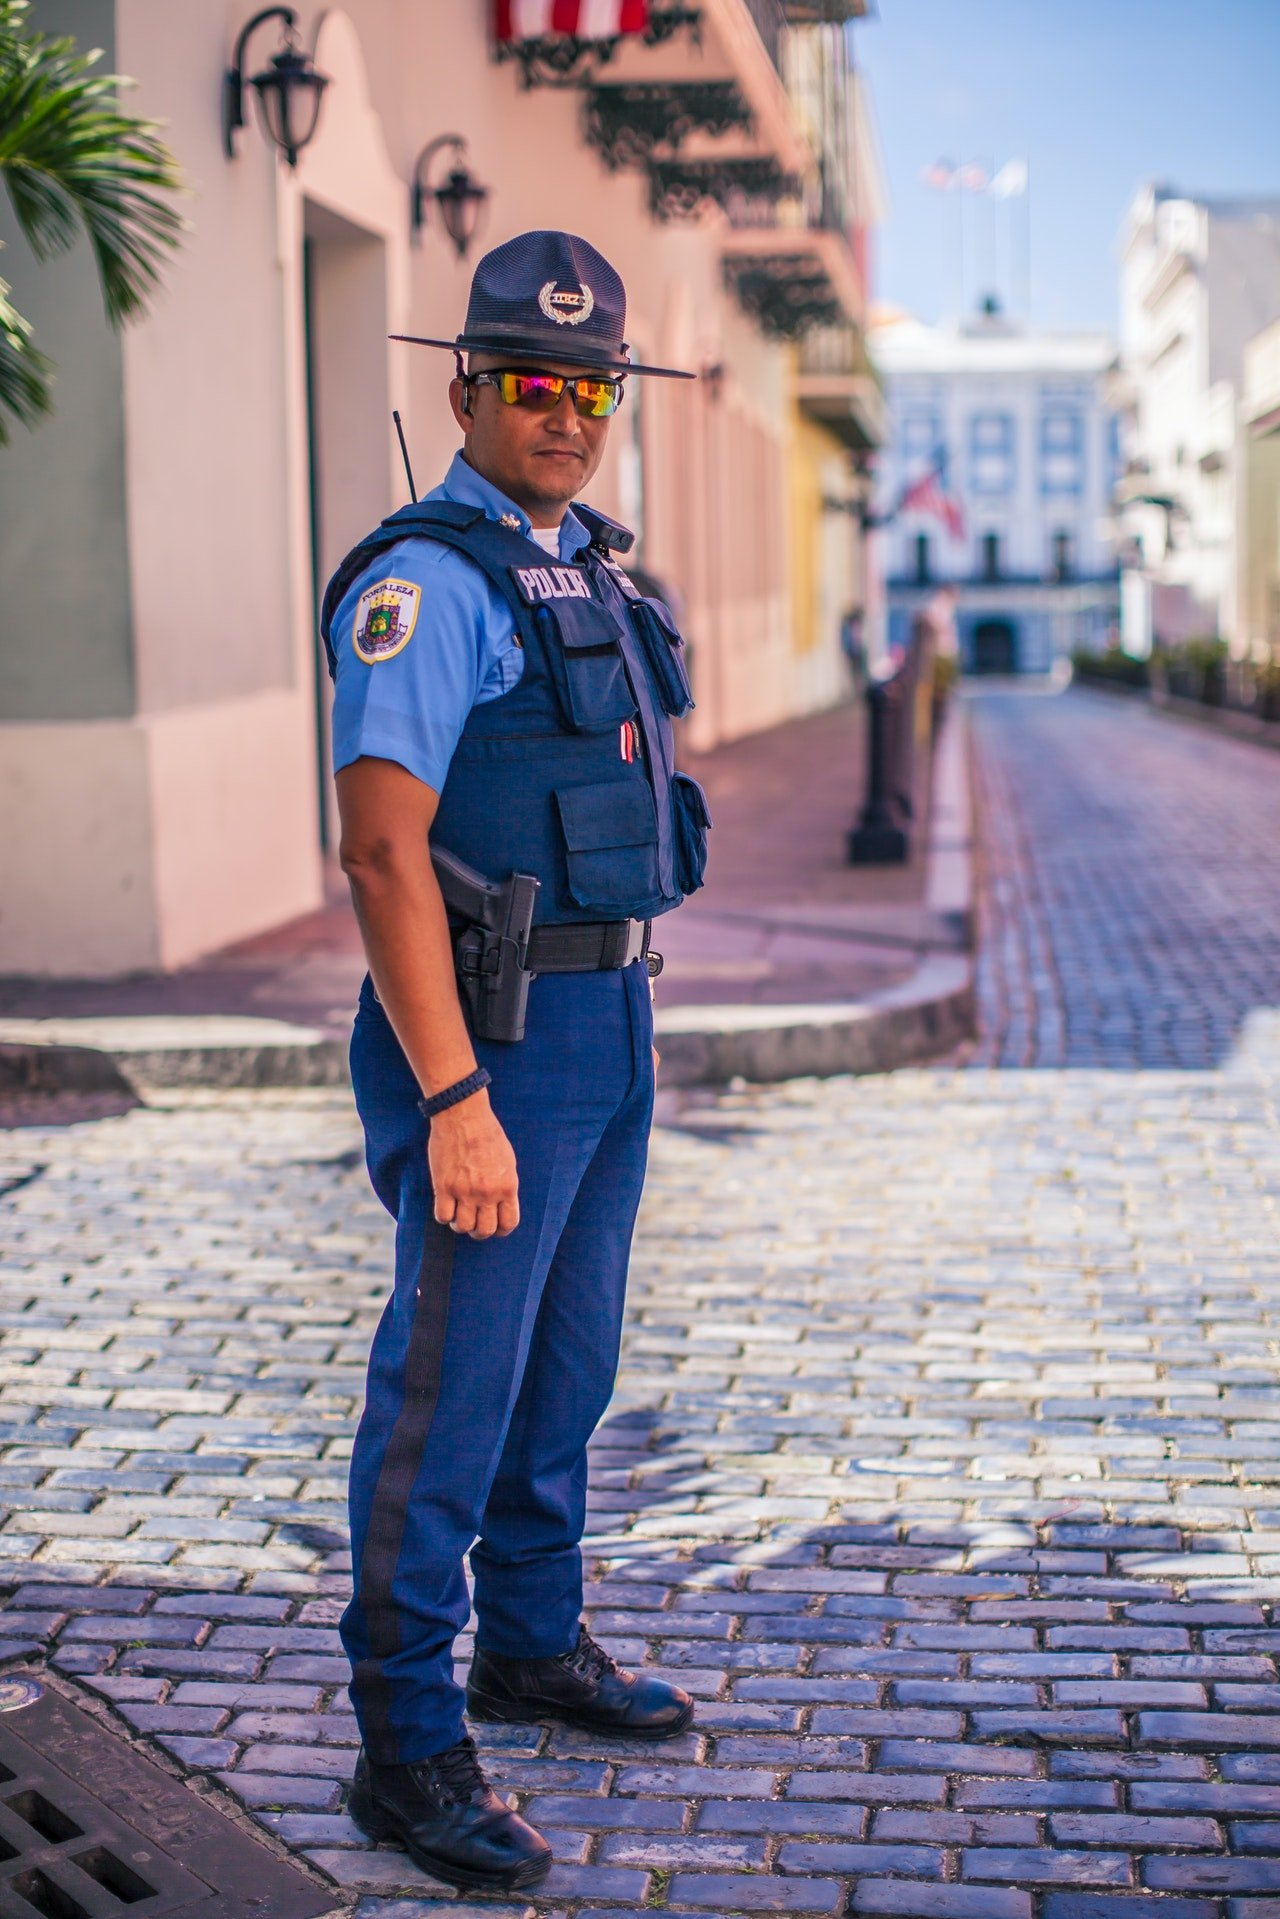 Photo of a fully kitted police officer | Photo: Pexels